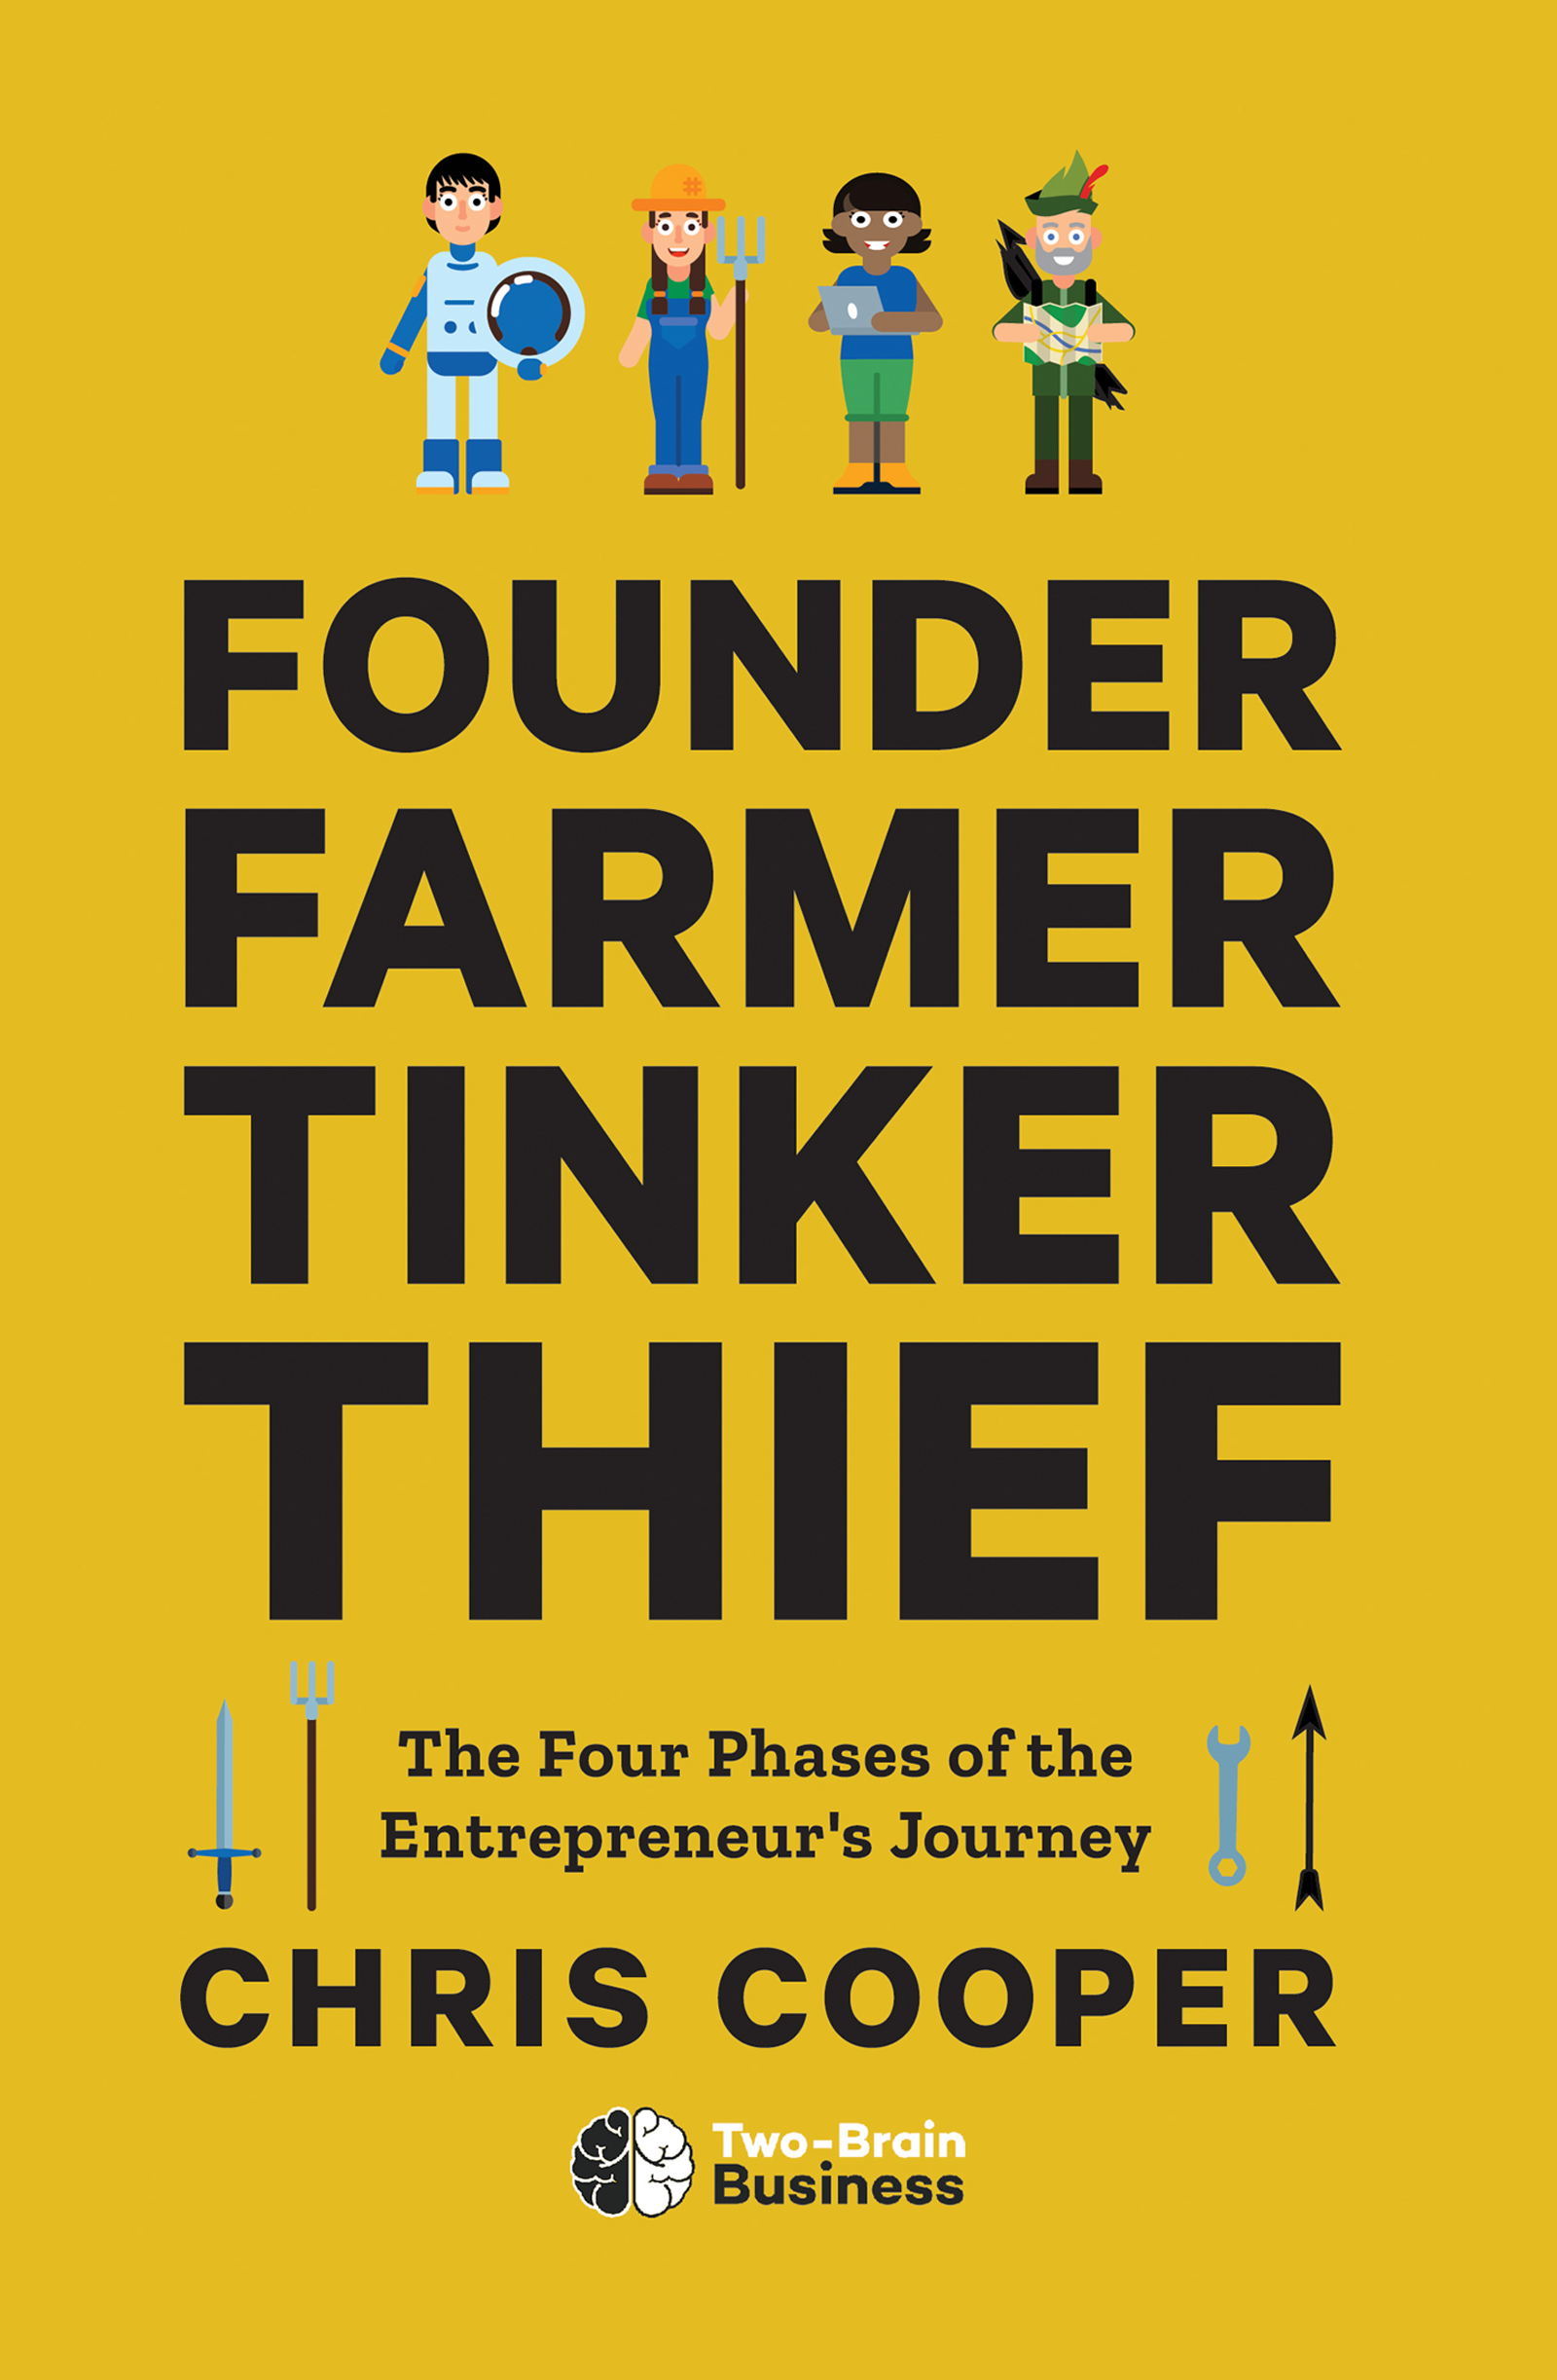 Founder, Farmer, Tinker, Thief